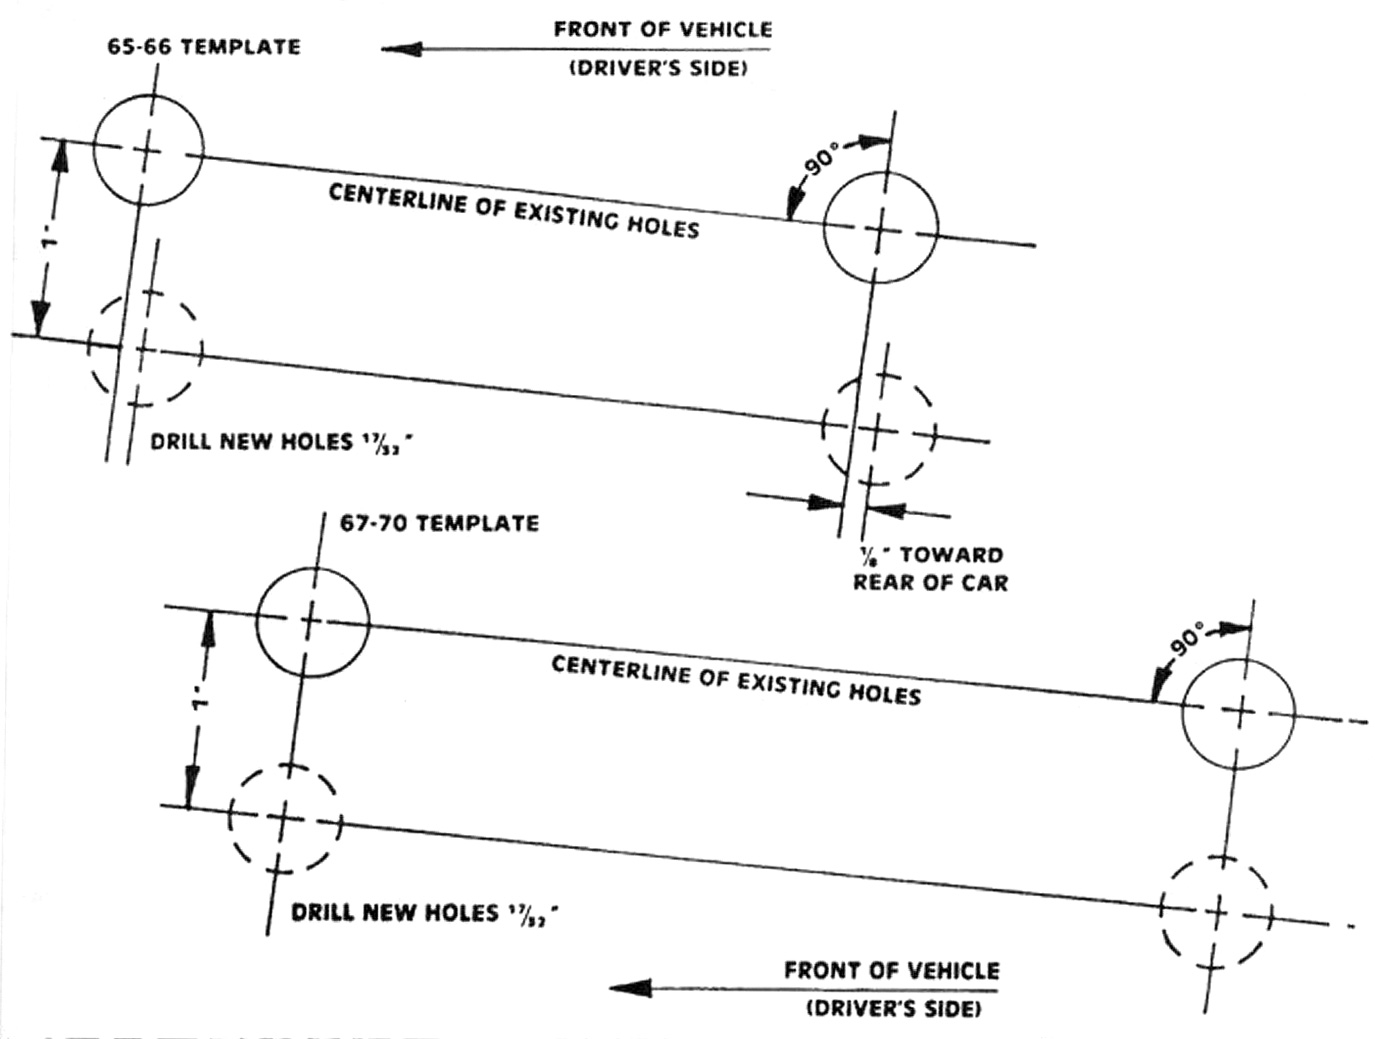 Restoration Ford Controls likewise Diagrams further 2005 Dodge Ram 1500 Fuse Box Diagram Efd78920b6f16124 further File 1968 Mercury Cougar convertible 302 4V Windsor together with Frame rail. on 69 cougar wiring diagram